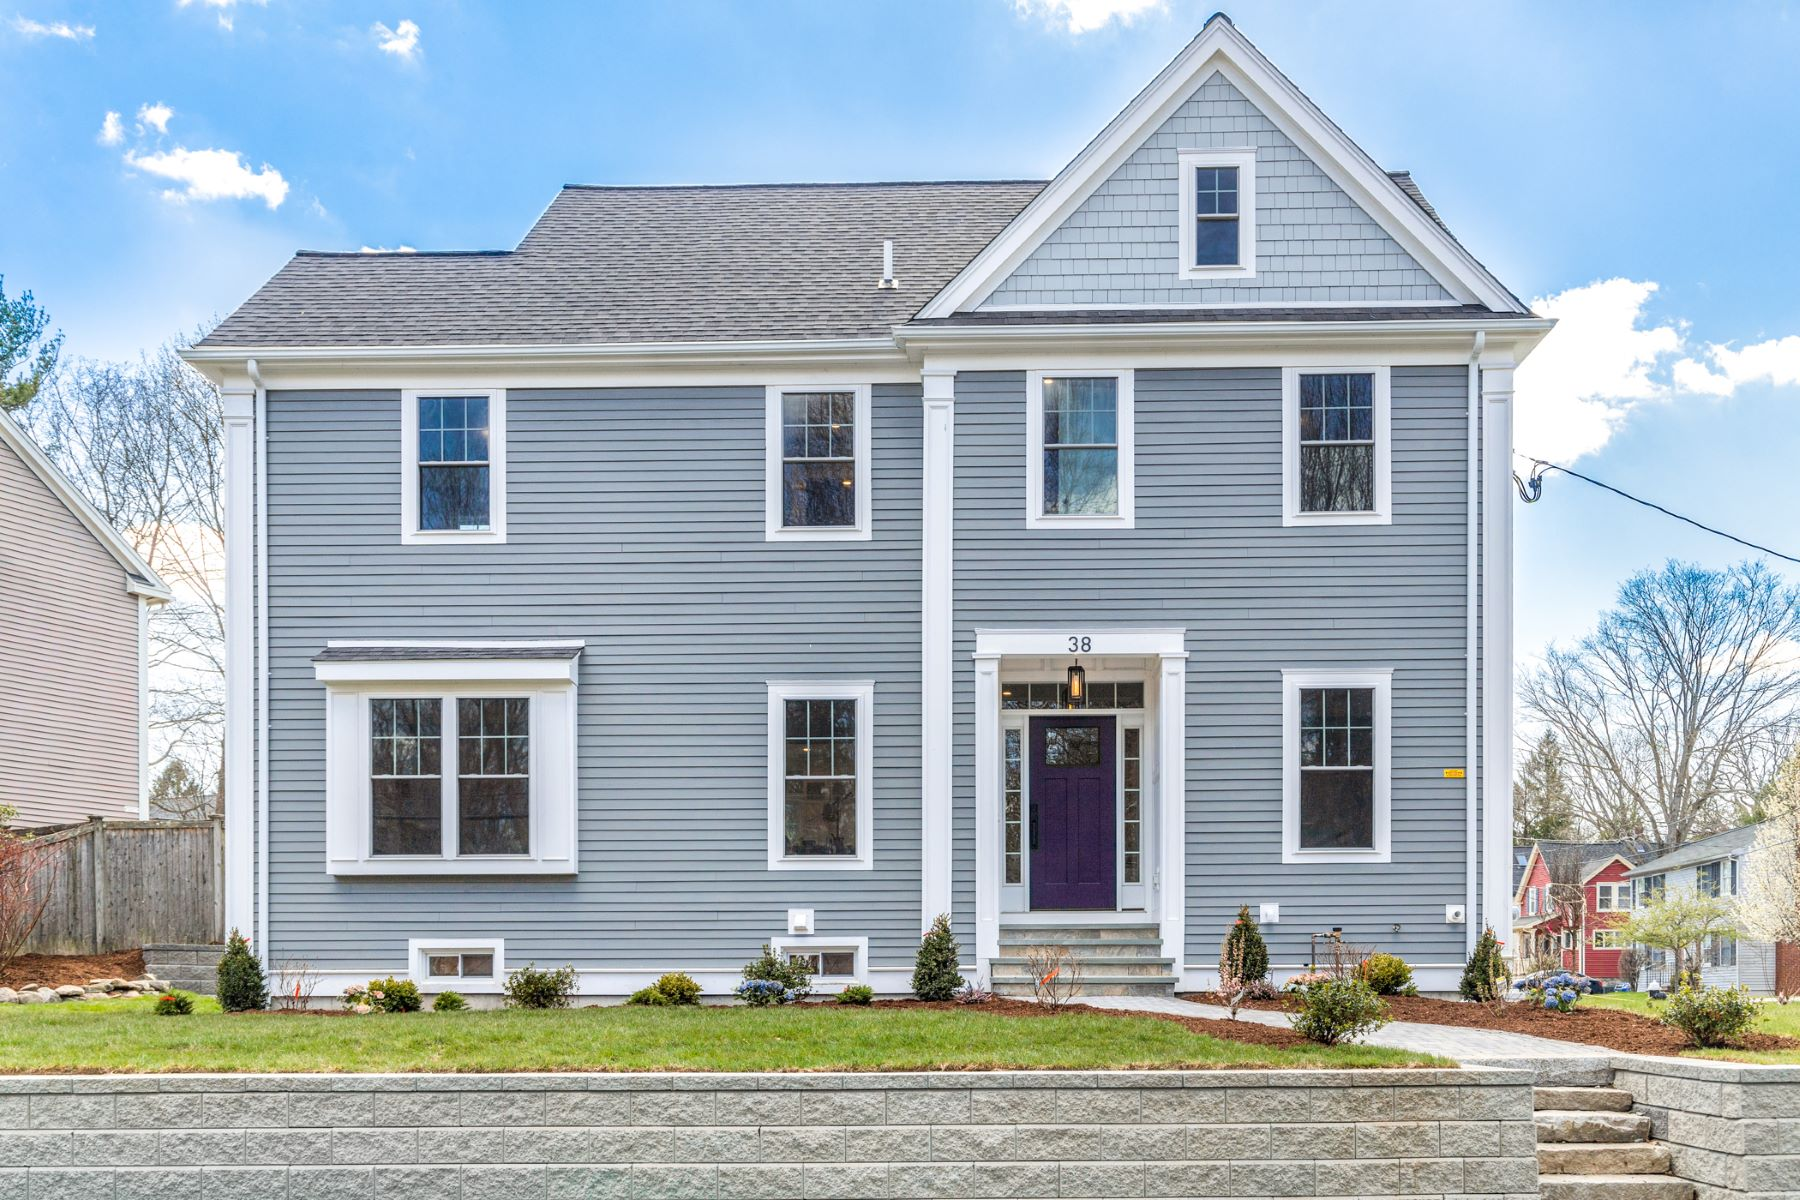 Single Family Homes for Active at 38 Cedar Street Lexington, Massachusetts 02421 United States